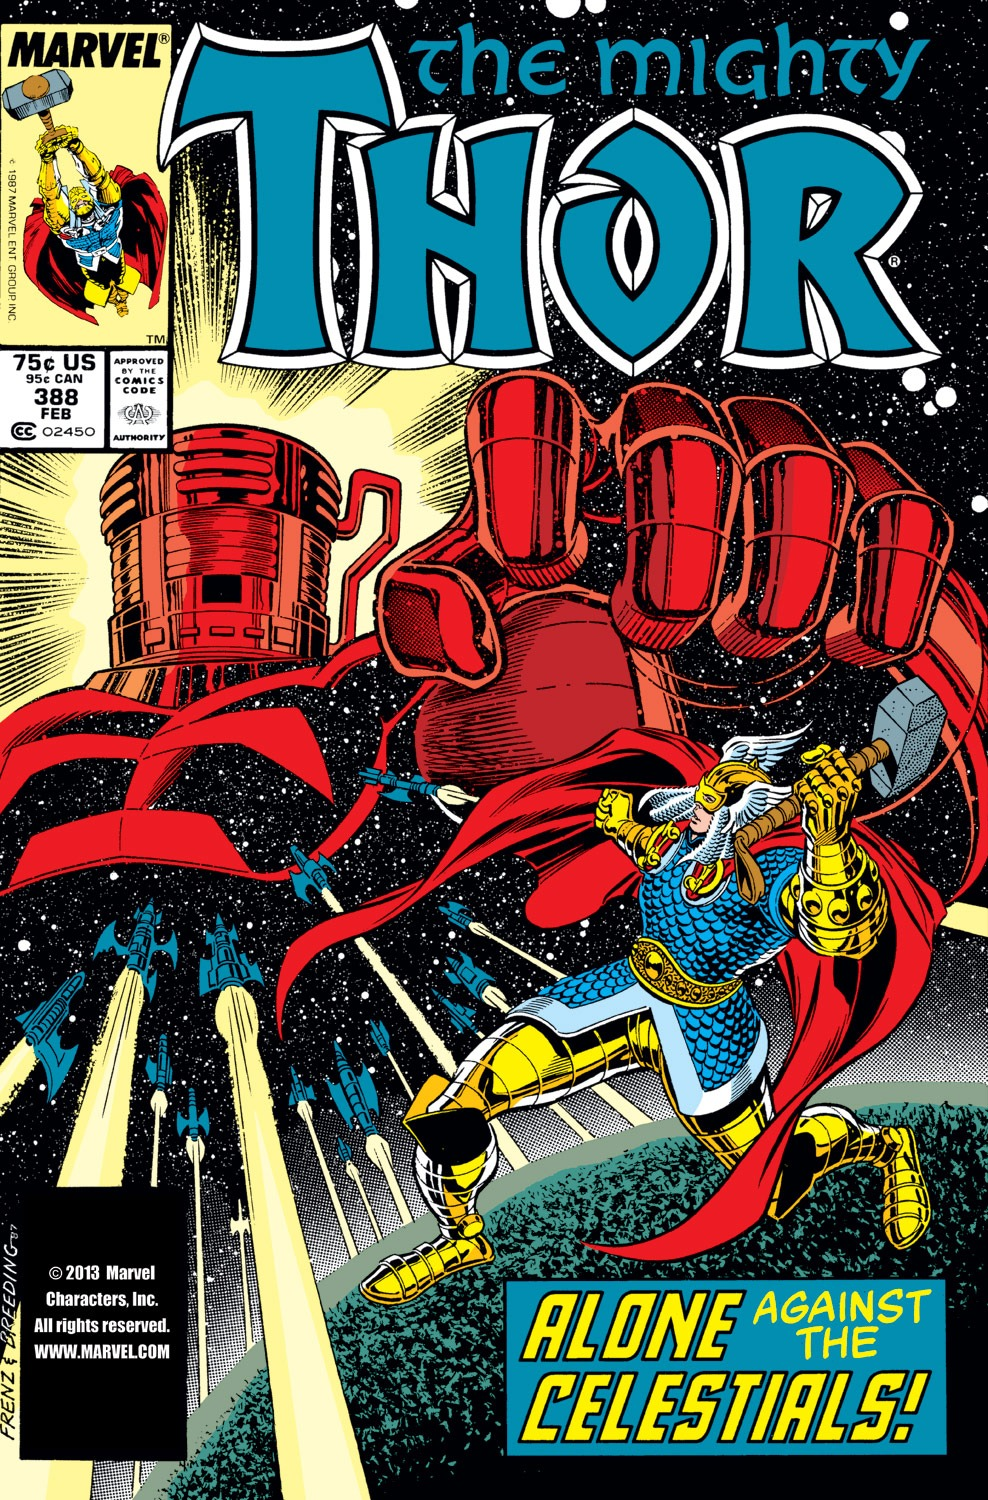 Thor (1966) 388 Page 1